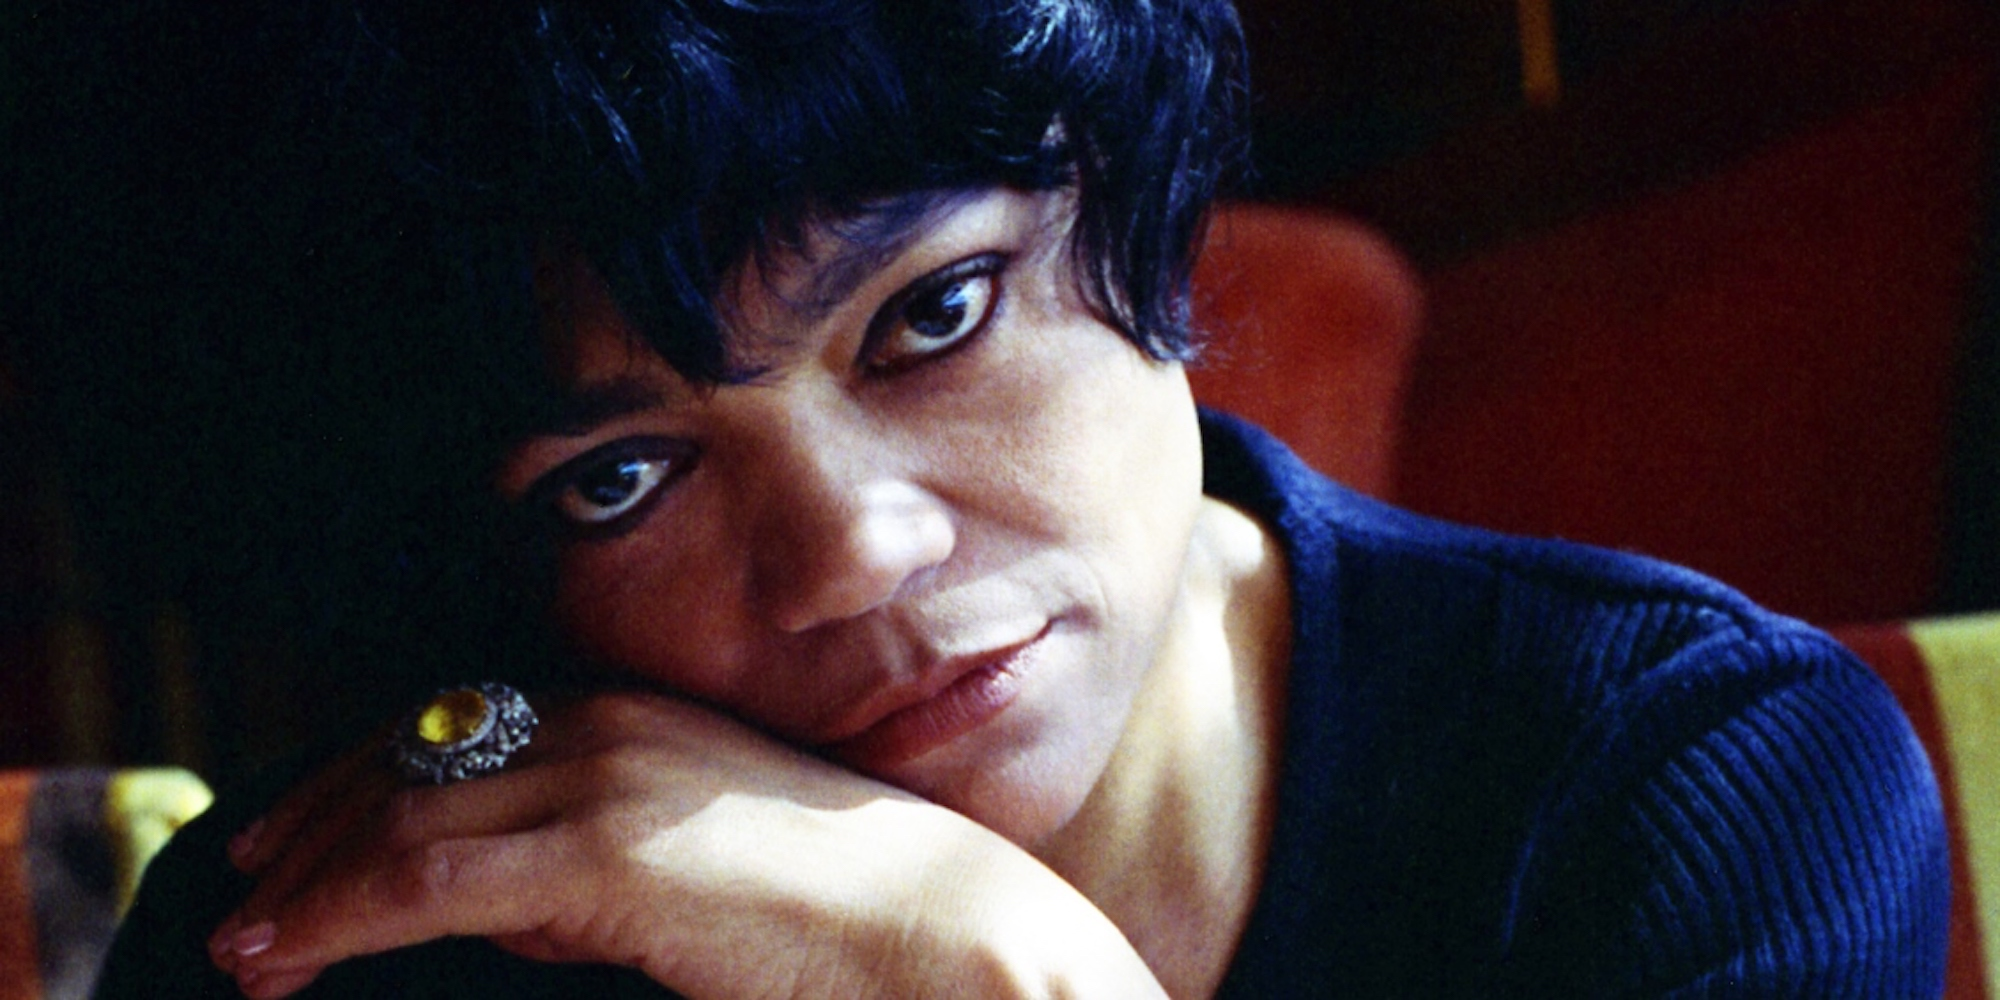 Eartha Kitt, African American Entertainer, Black Entertainer, KOLUMN Magazine, KOLUMN, KINDR'D Magazine, KINDR'D, Willoughby Avenue, Wriit,